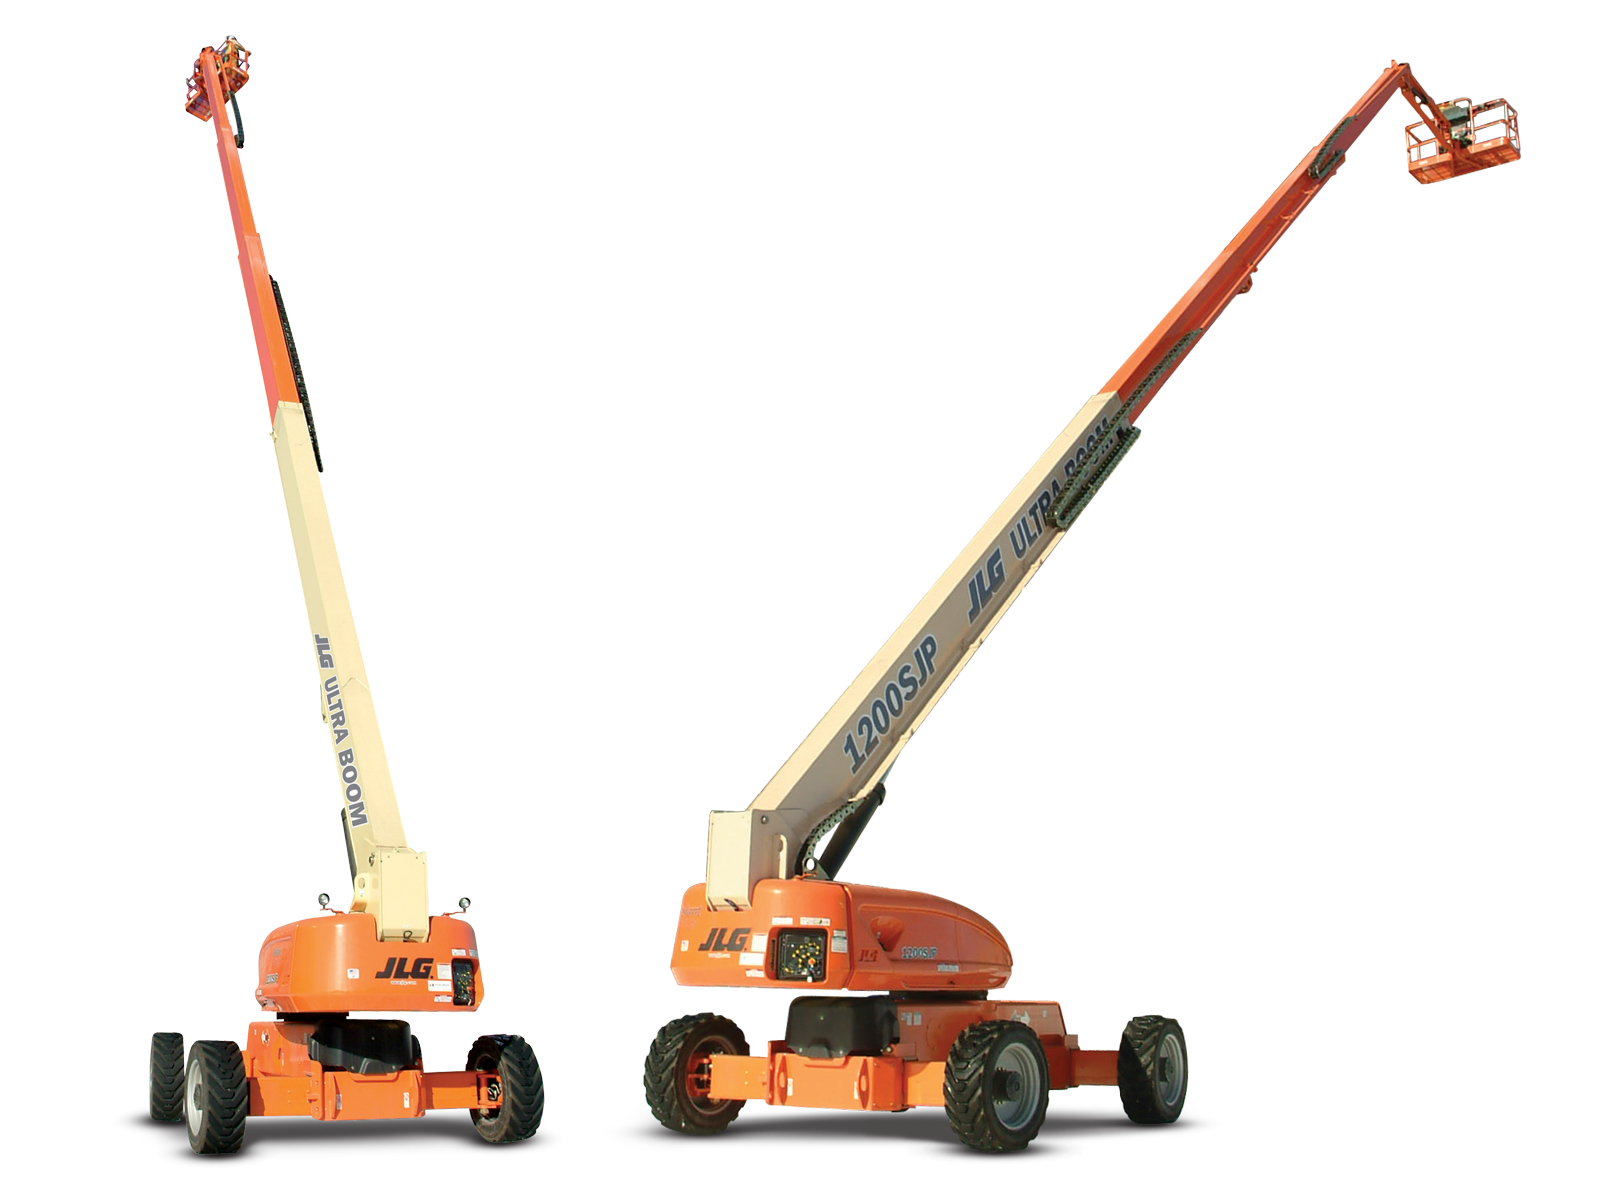 JLG Ultra Series Telescopic Boom Lift 1200SJP